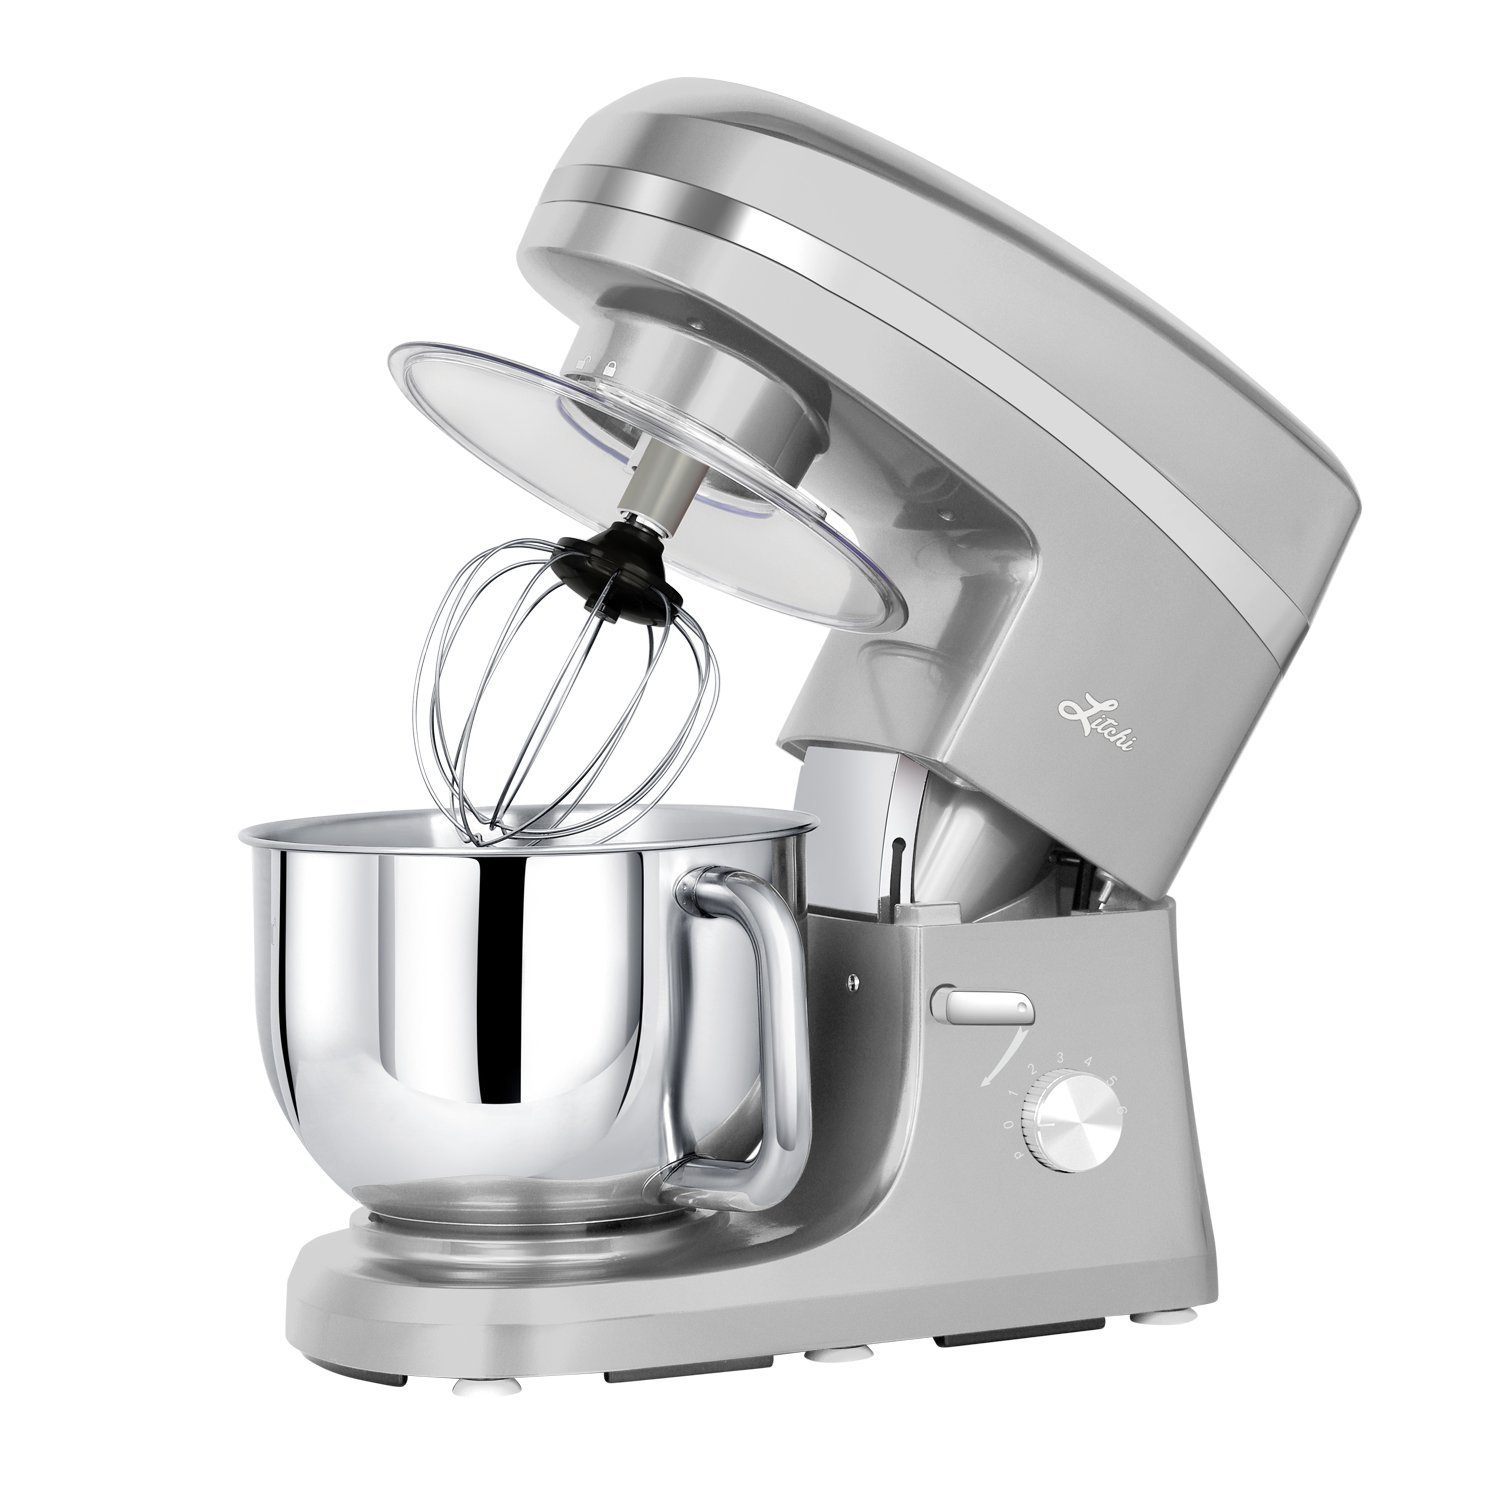 Litchi Stand Mixer, 5.5 Qt. Kitchen Mixer, 650W 6 Speed Tilt-Head Stand Mixers with Splash Guard, Stainless Steel Bowl, Beaters, Whisk, Dough Hook, Silver SM983S